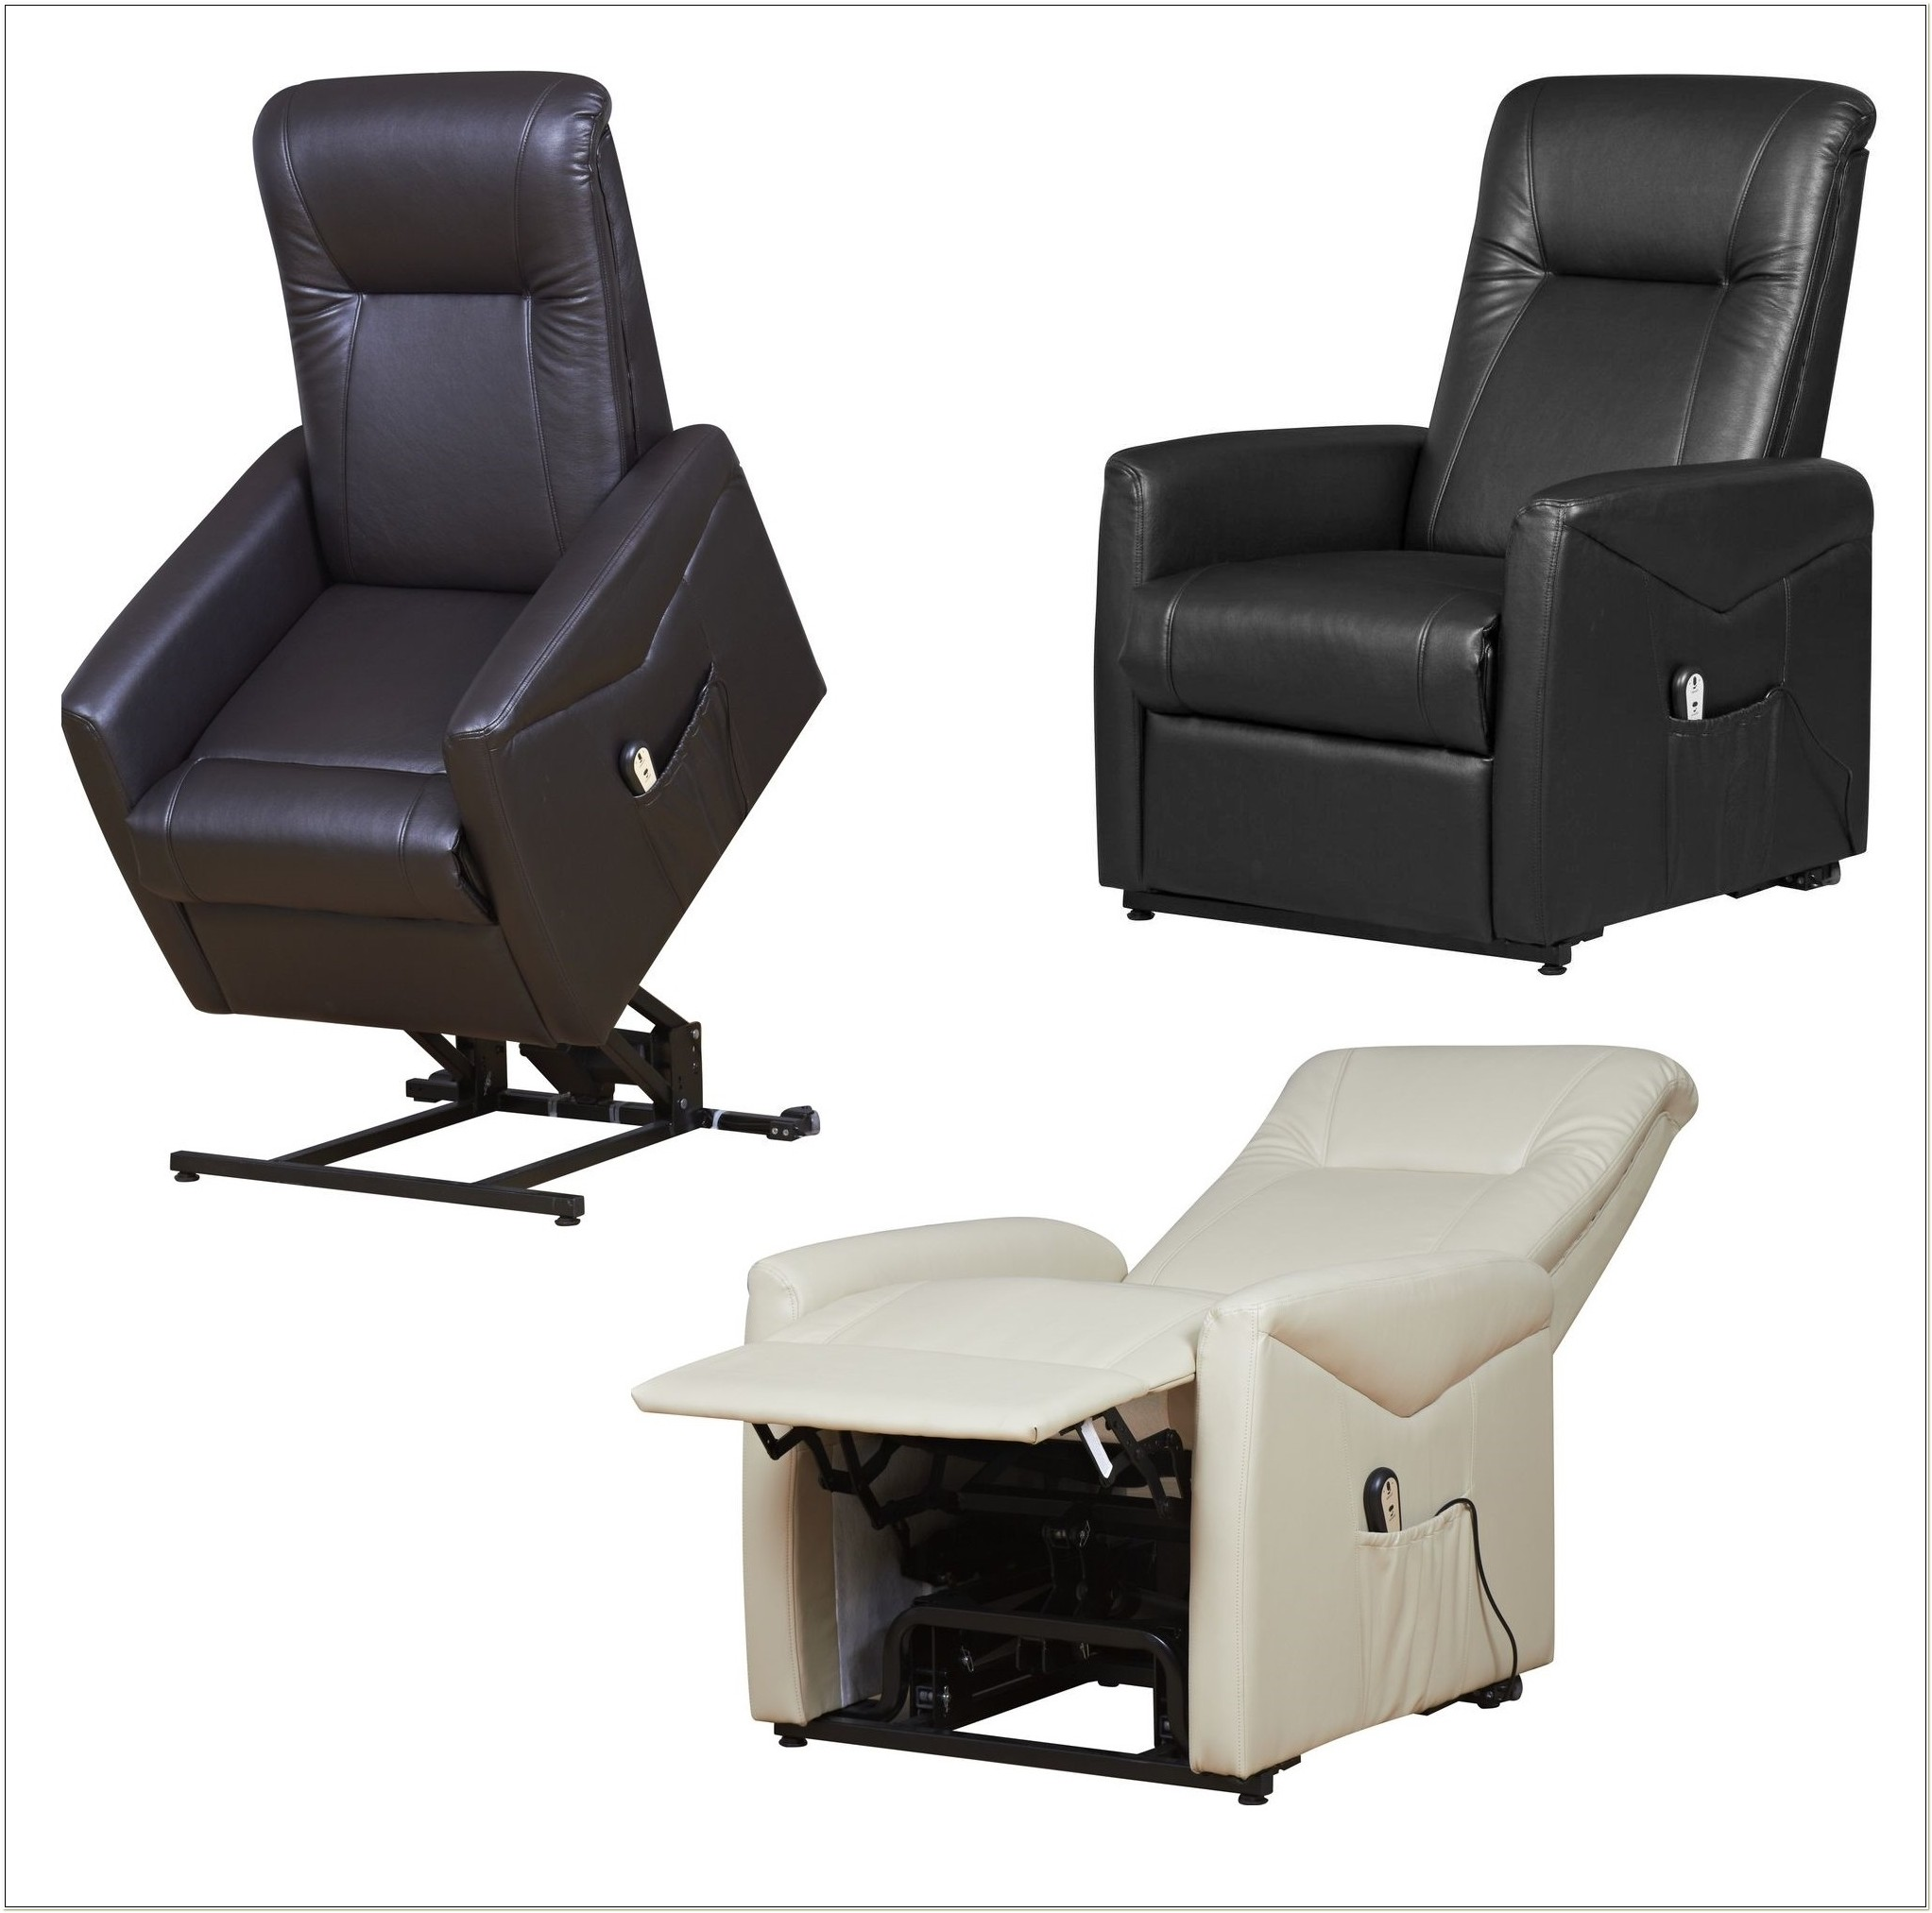 Electric Riser Recliner Chair Used